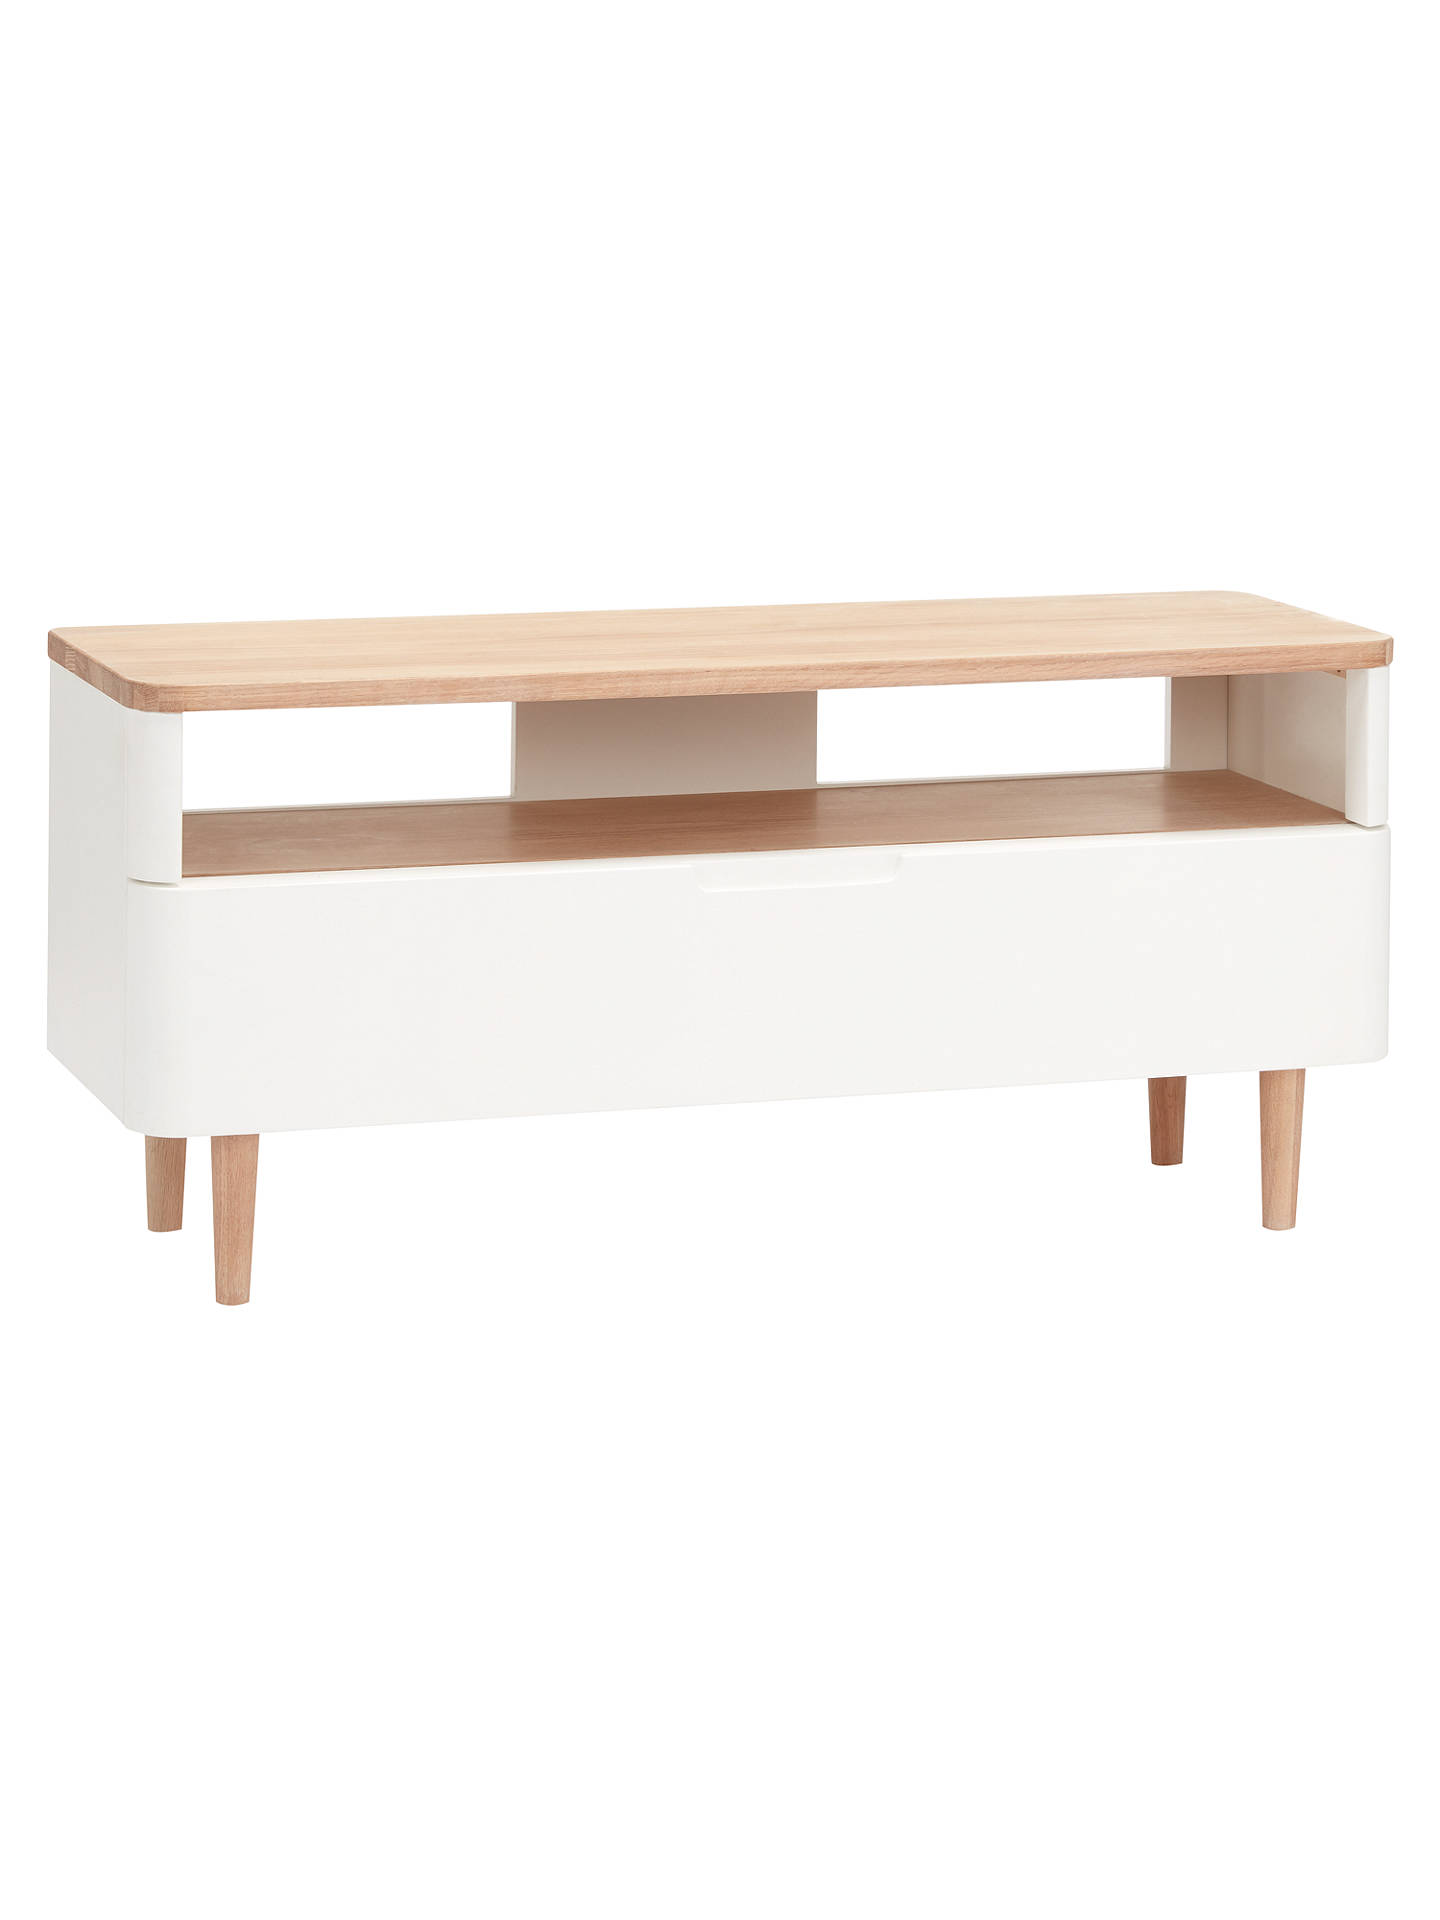 a2960facd48c Ebbe Gehl for John Lewis Mira TV Stand for TVs up to 60